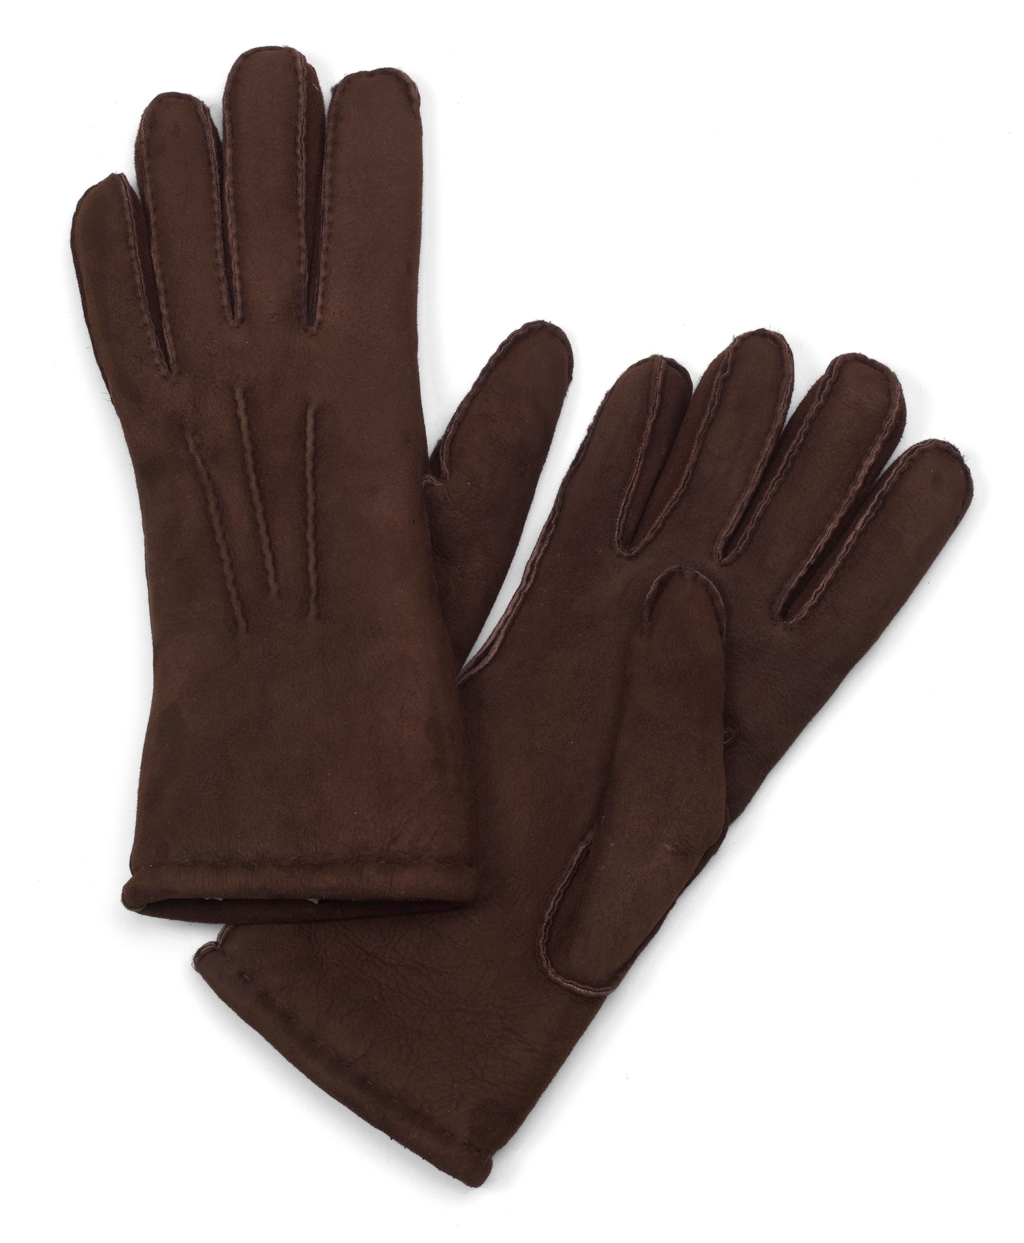 1920s Mens Accessories: Gloves, Spats, Pocket Watch, Collar Bar Brooks Brothers Mens Shearling Gloves $248.00 AT vintagedancer.com